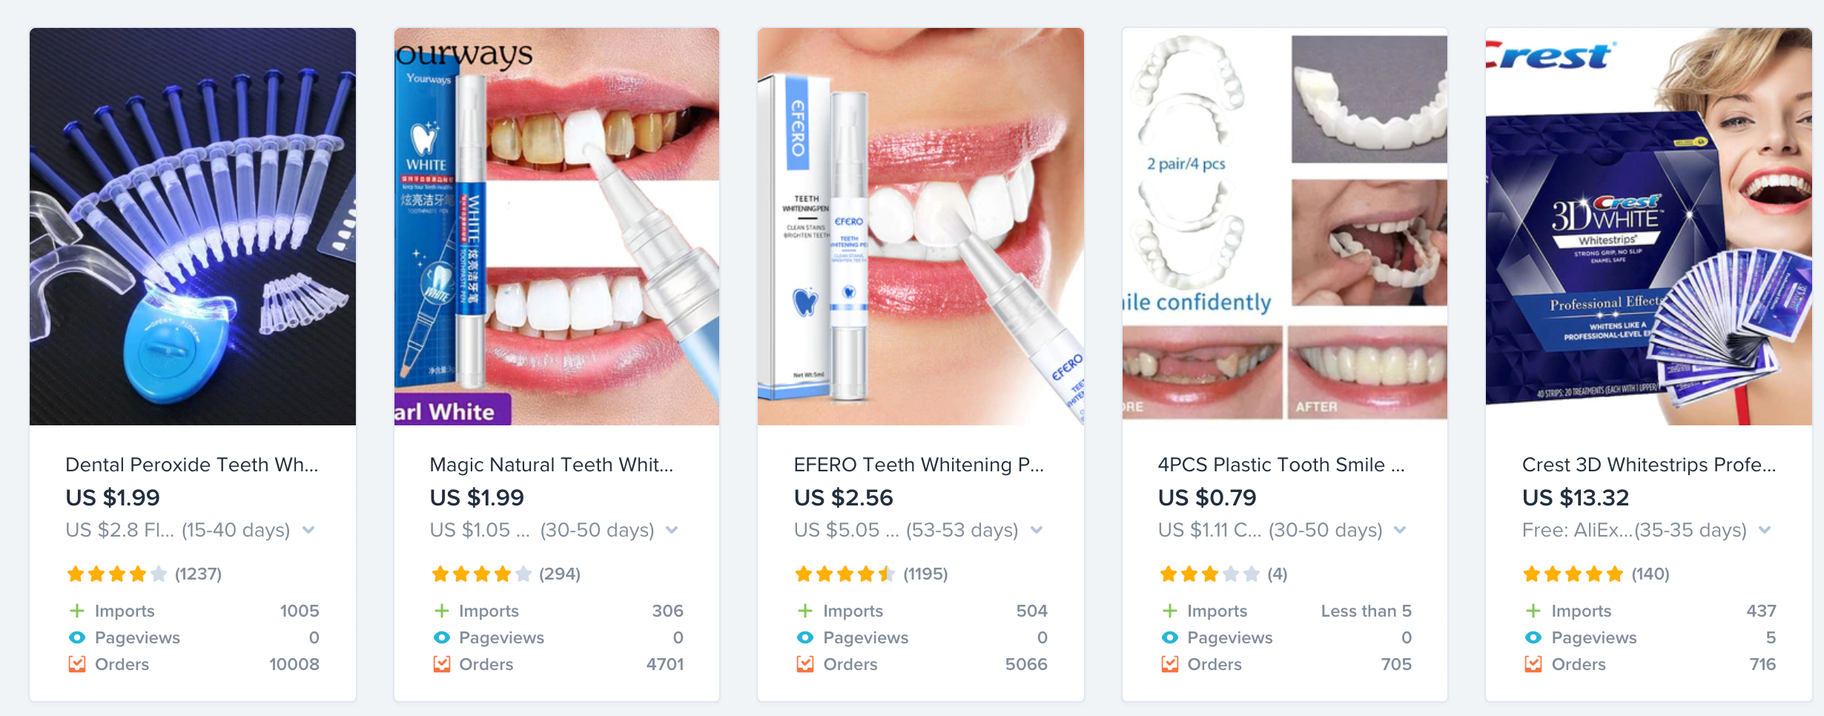 teeth whitening oberlo products